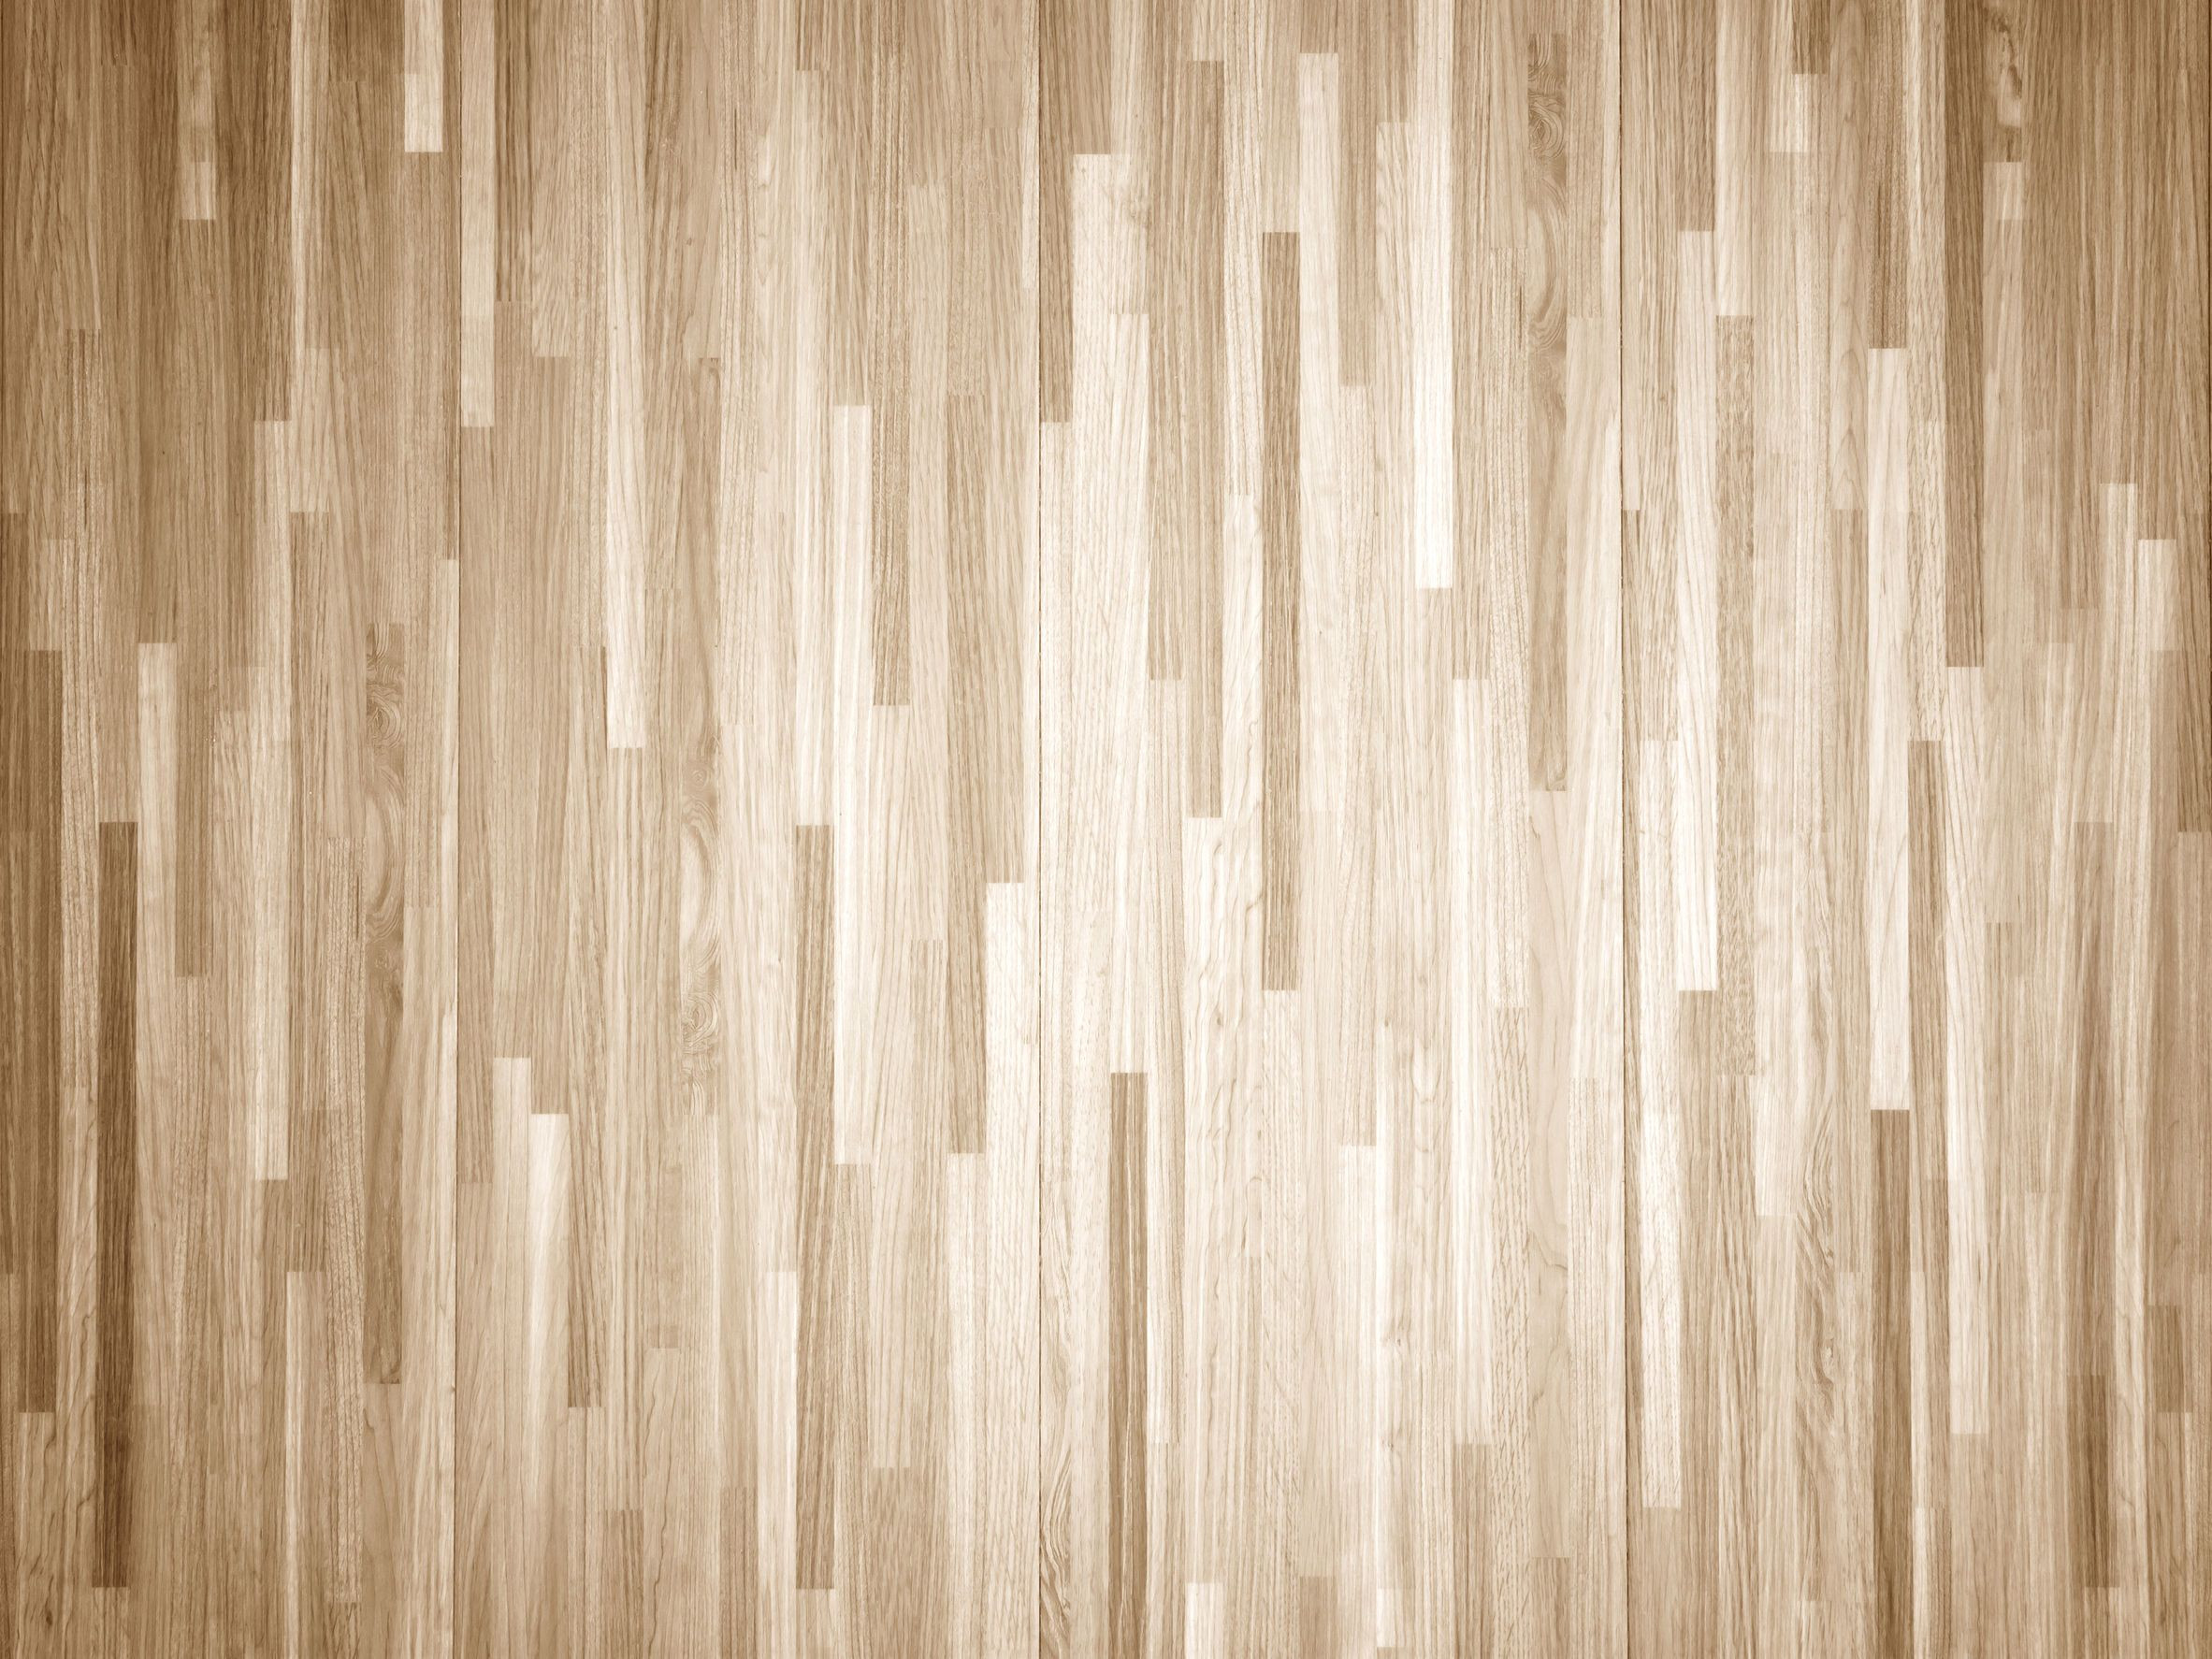 how much to refinish hardwood floors diy of how to chemically strip wood floors woodfloordoctor com regarding you